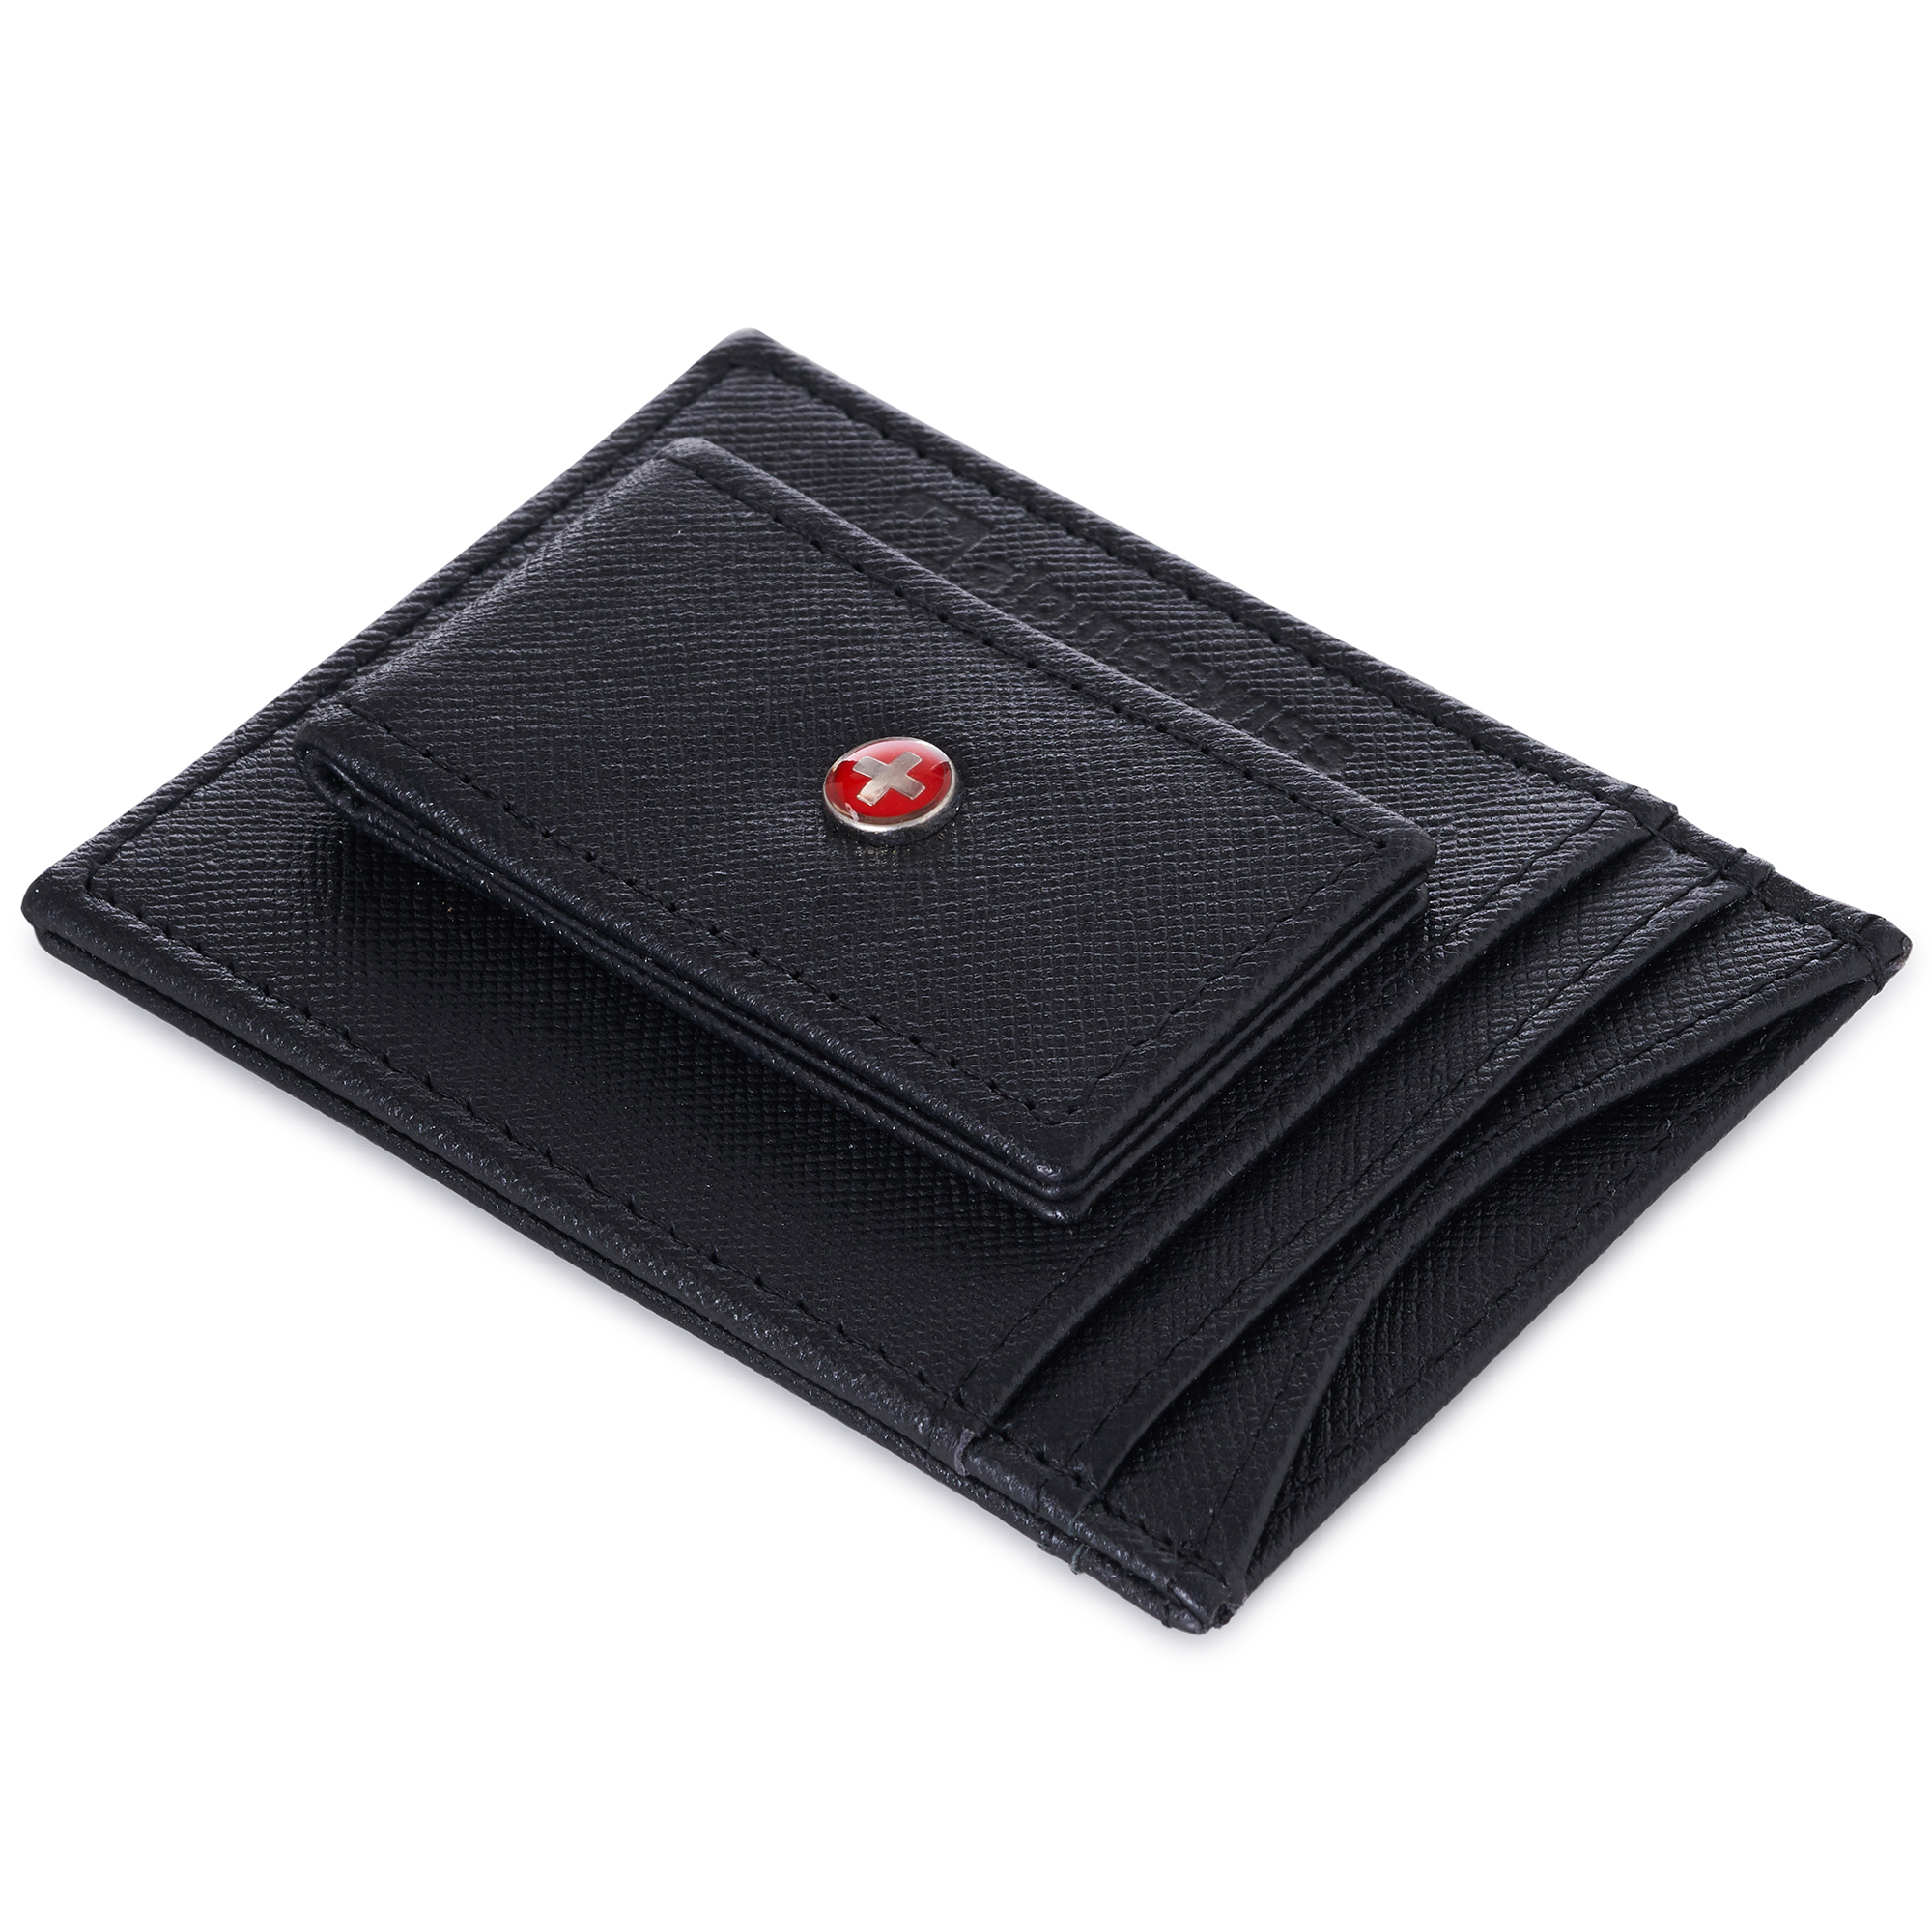 AlpineSwiss-Mens-Leather-Money-Clip-Magnet-Front-Pocket-Wallet-Slim-ID-Card-Case thumbnail 45